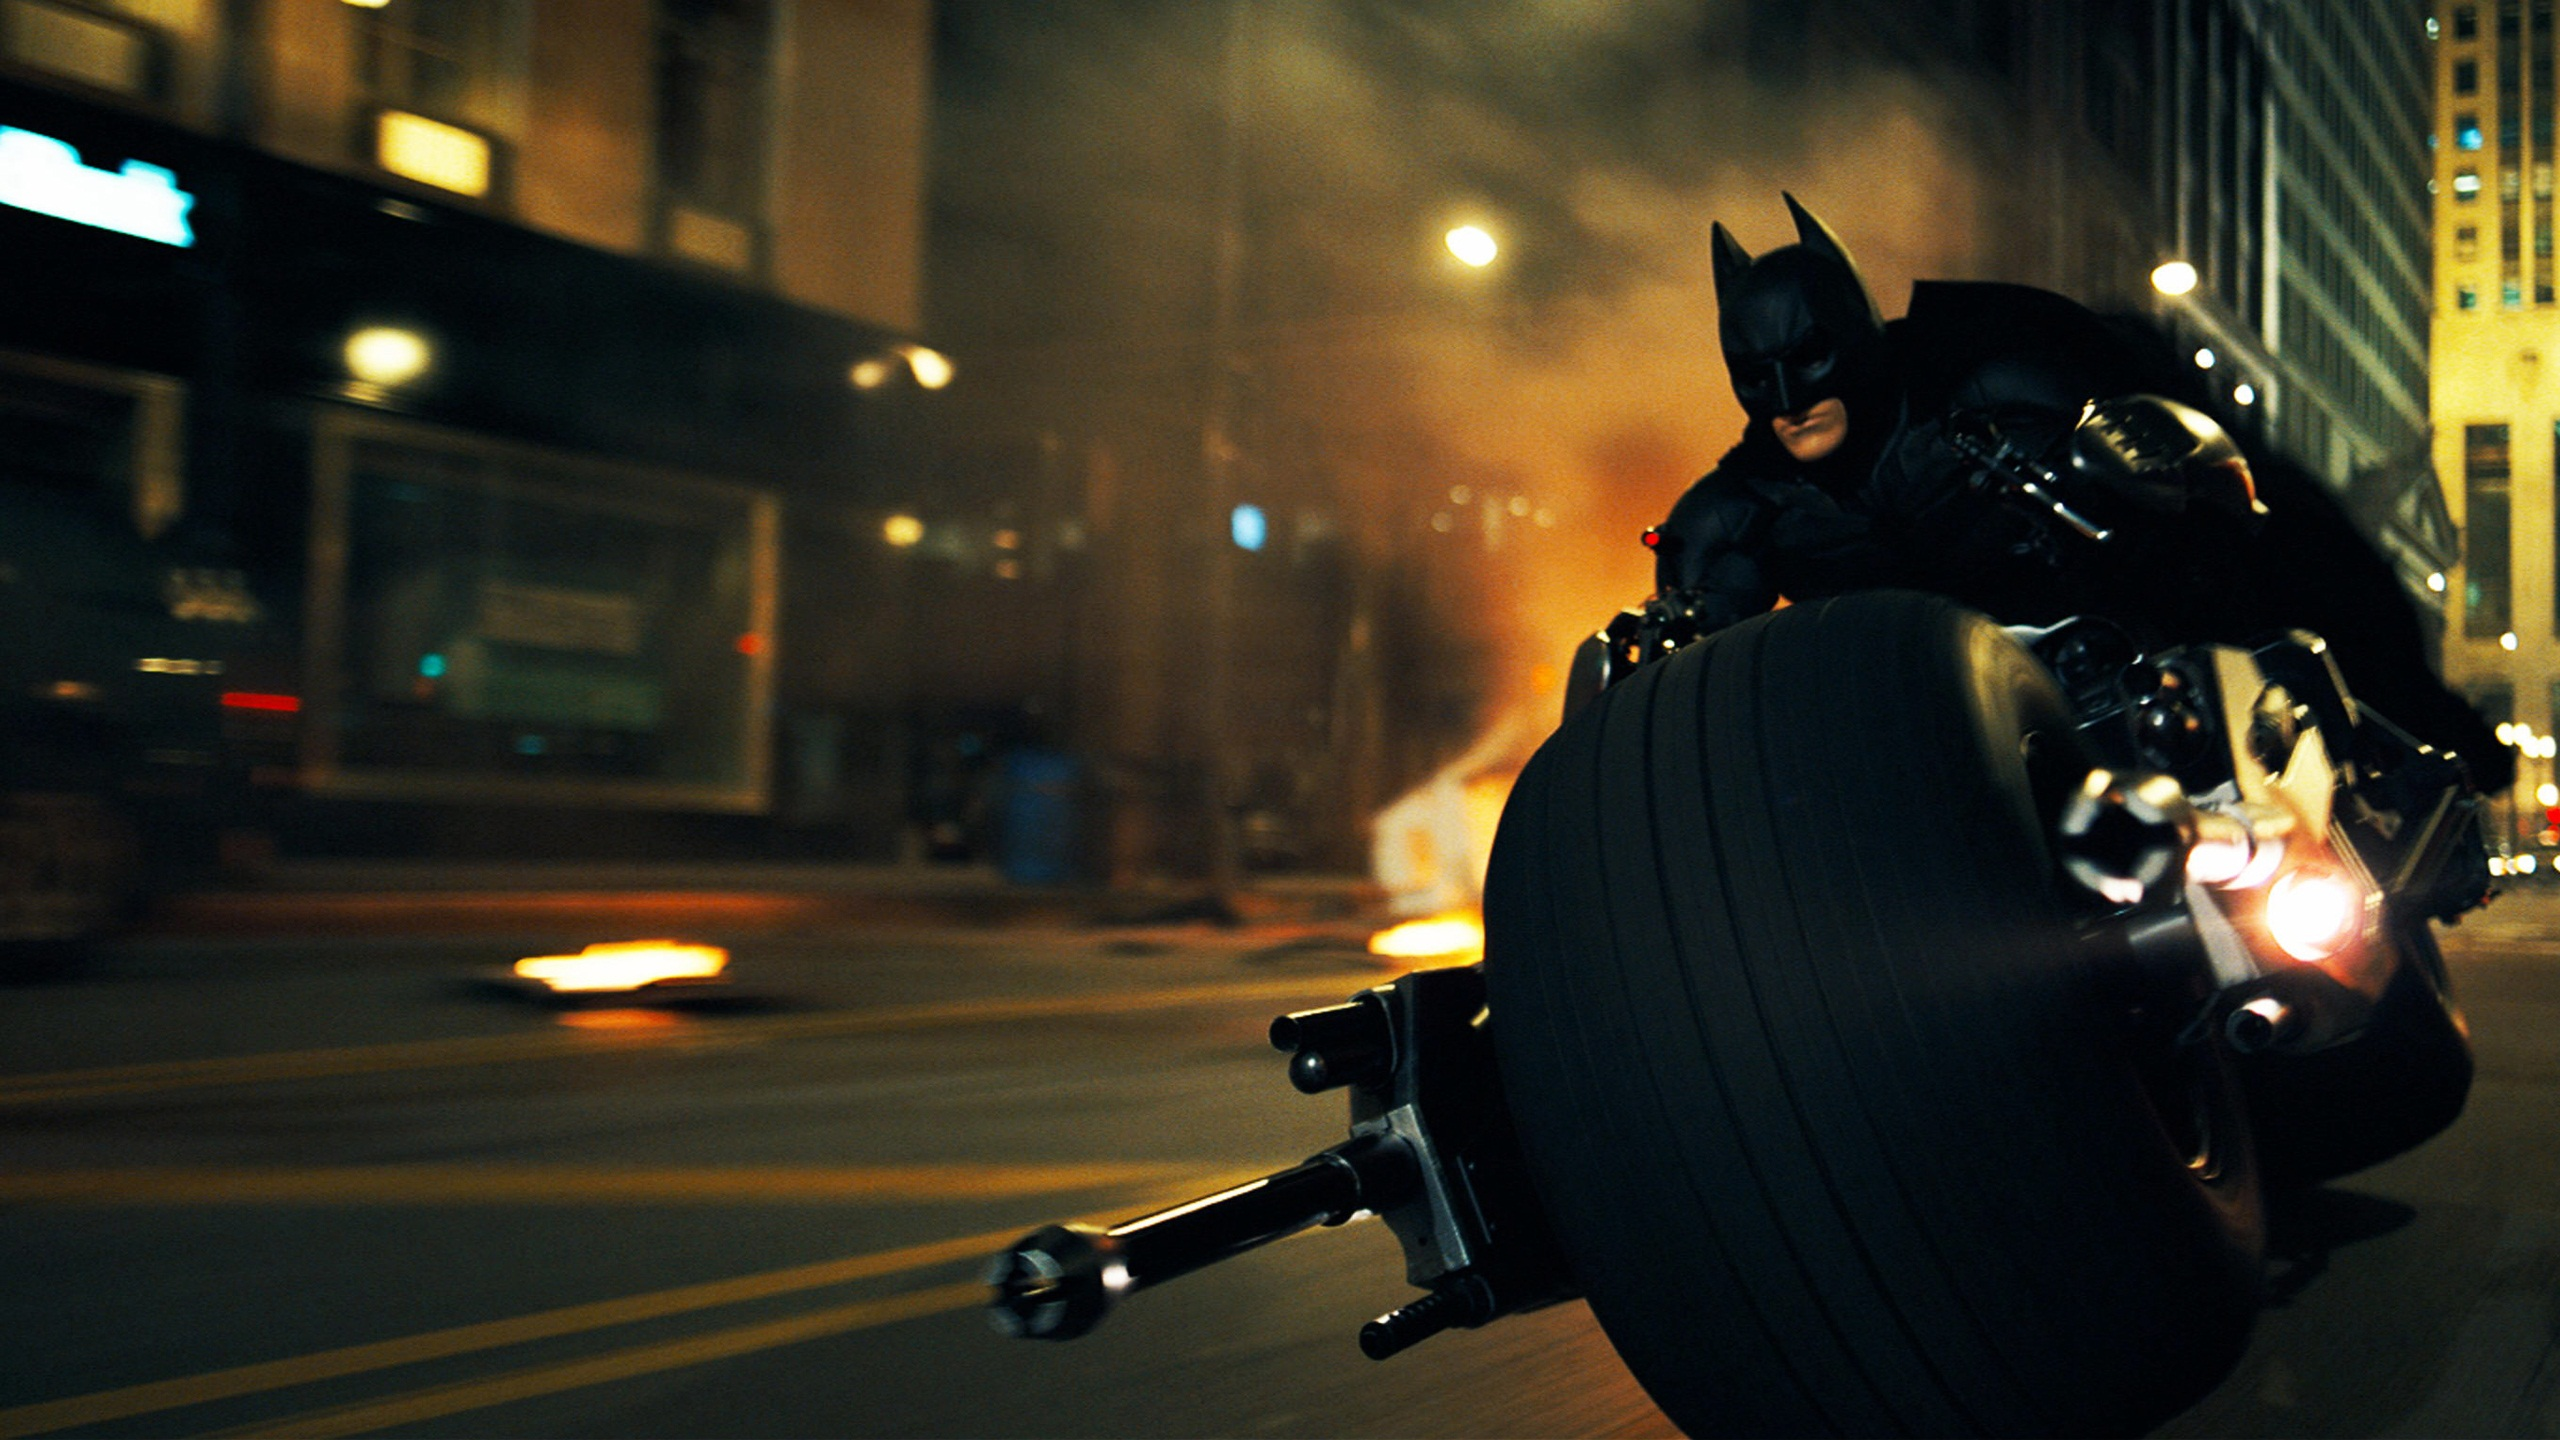 Dark Knight Rises HD Wallpapers and Desktop Backgrounds Dark Knight 2560x1440